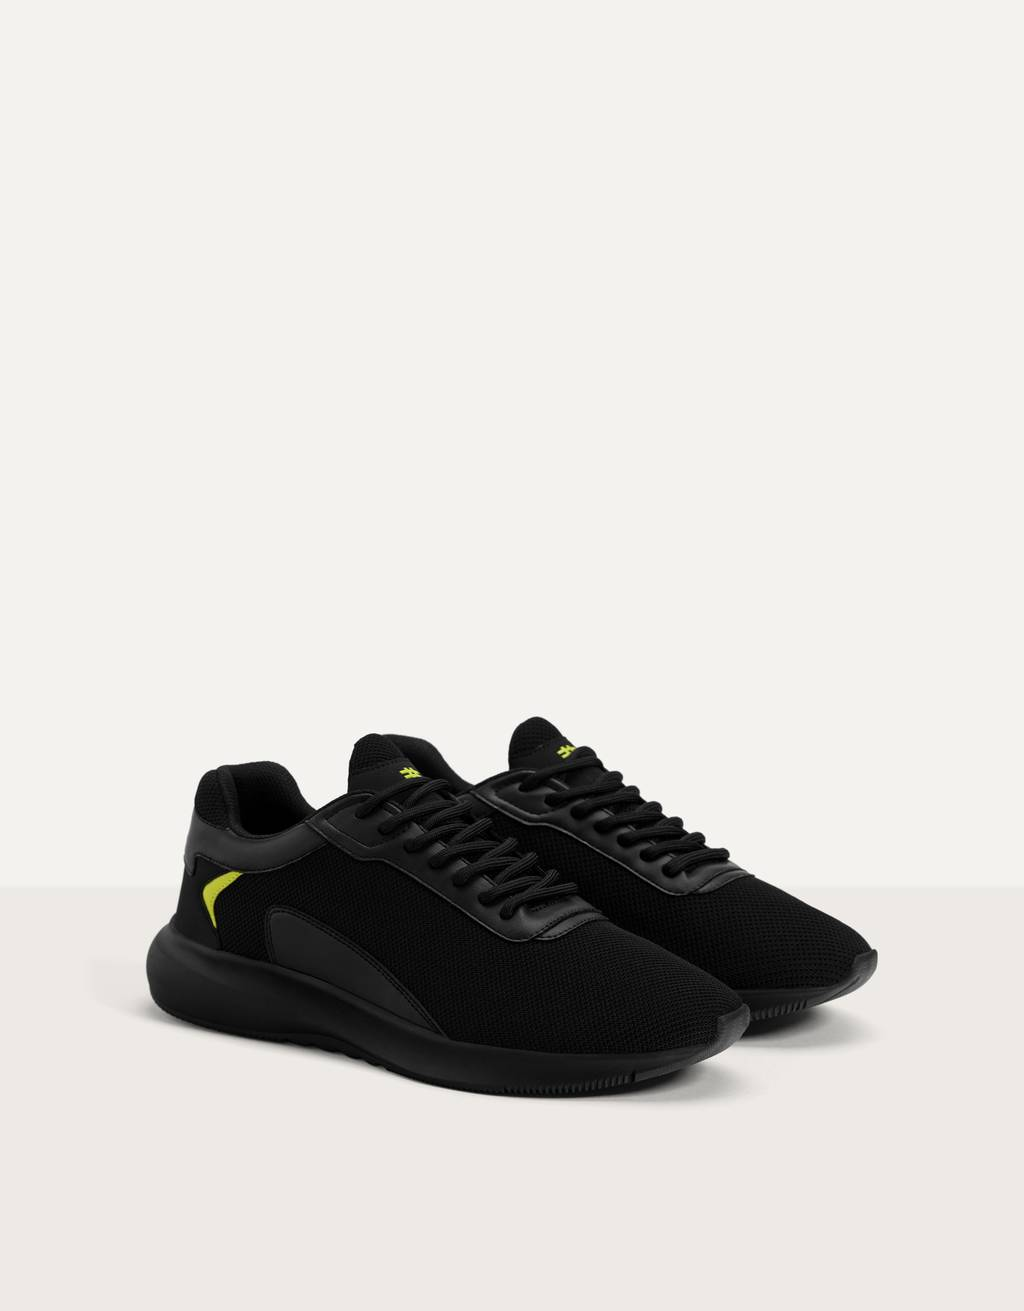 Men's mesh trainers with neon detail